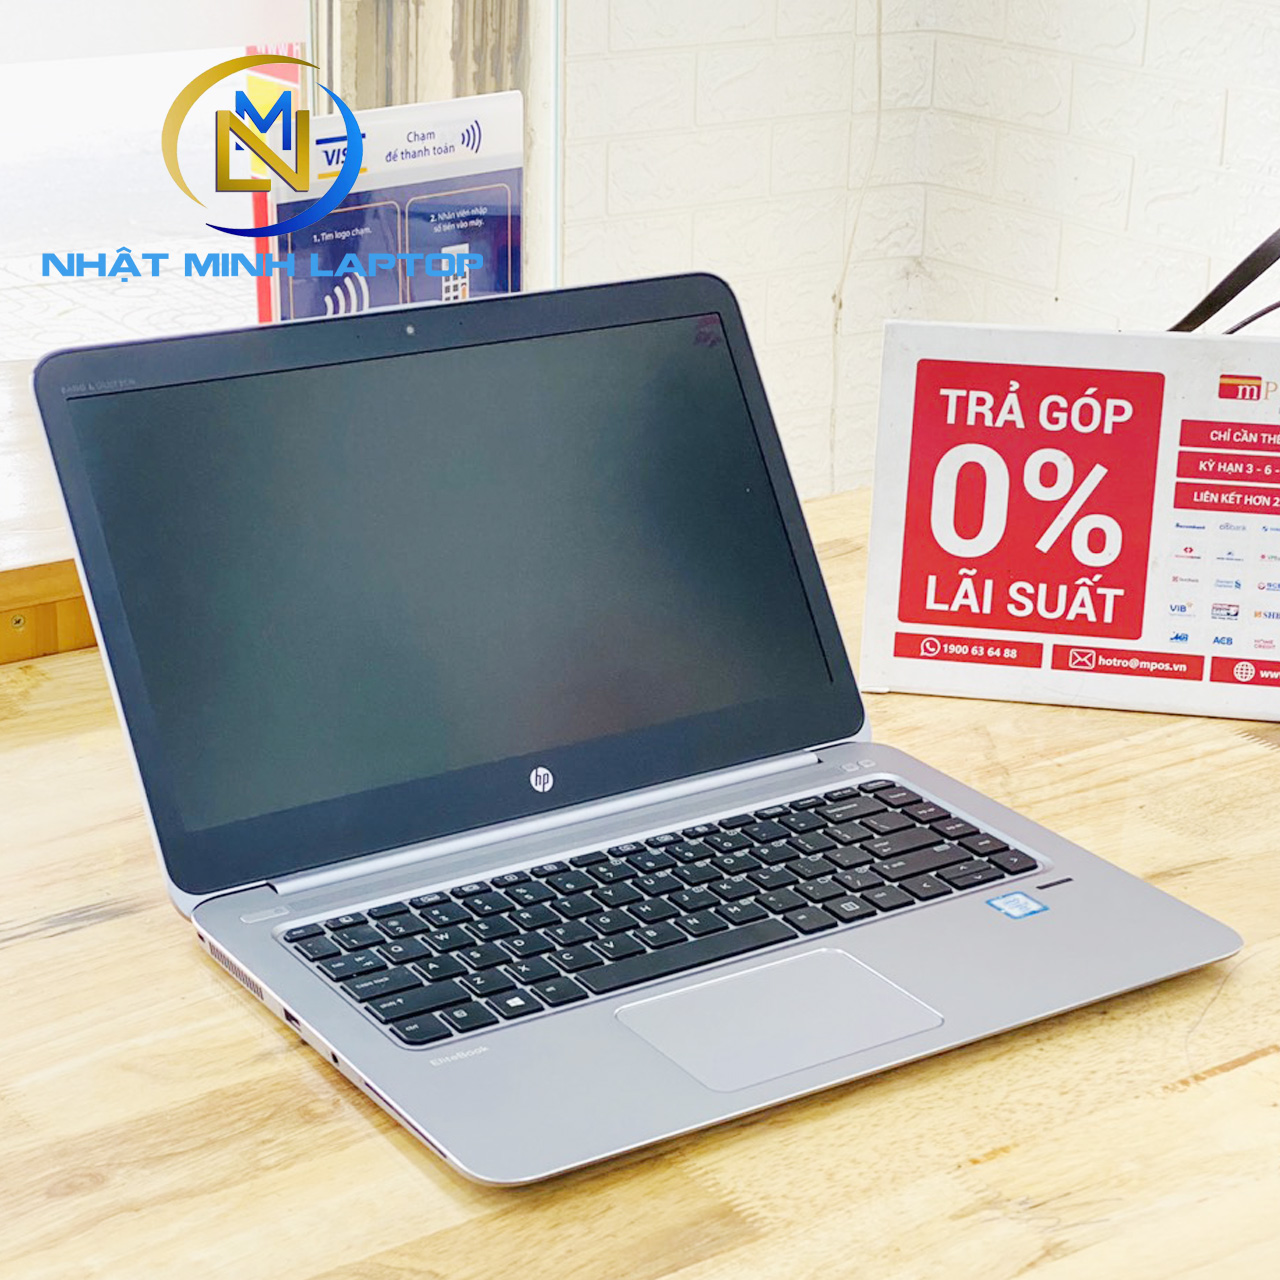 Laptop HP Folio 1040 G3 i7-6600U Ram 8G SSD 256G 14 inch Full HD Siêu Mỏng